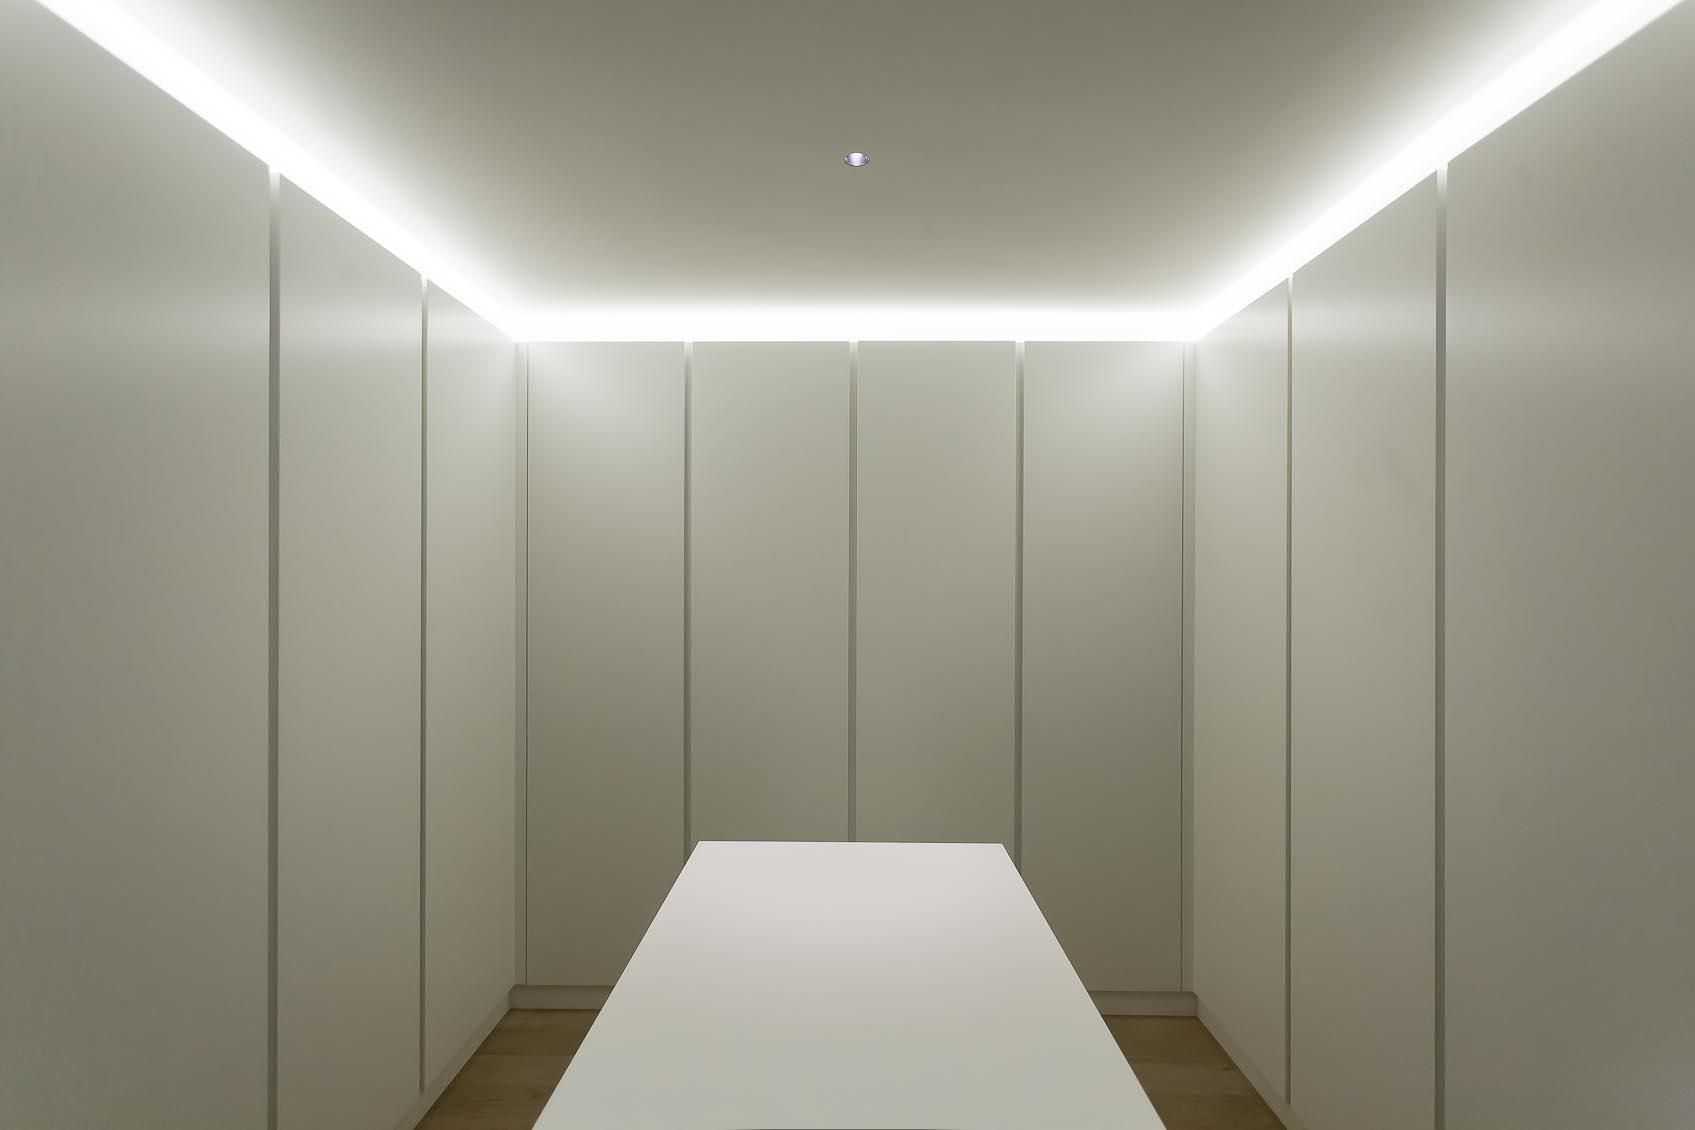 Indirecte Verlichting Hal Indirect Lighting Changing Room In 2019 Indirecte Verlichting